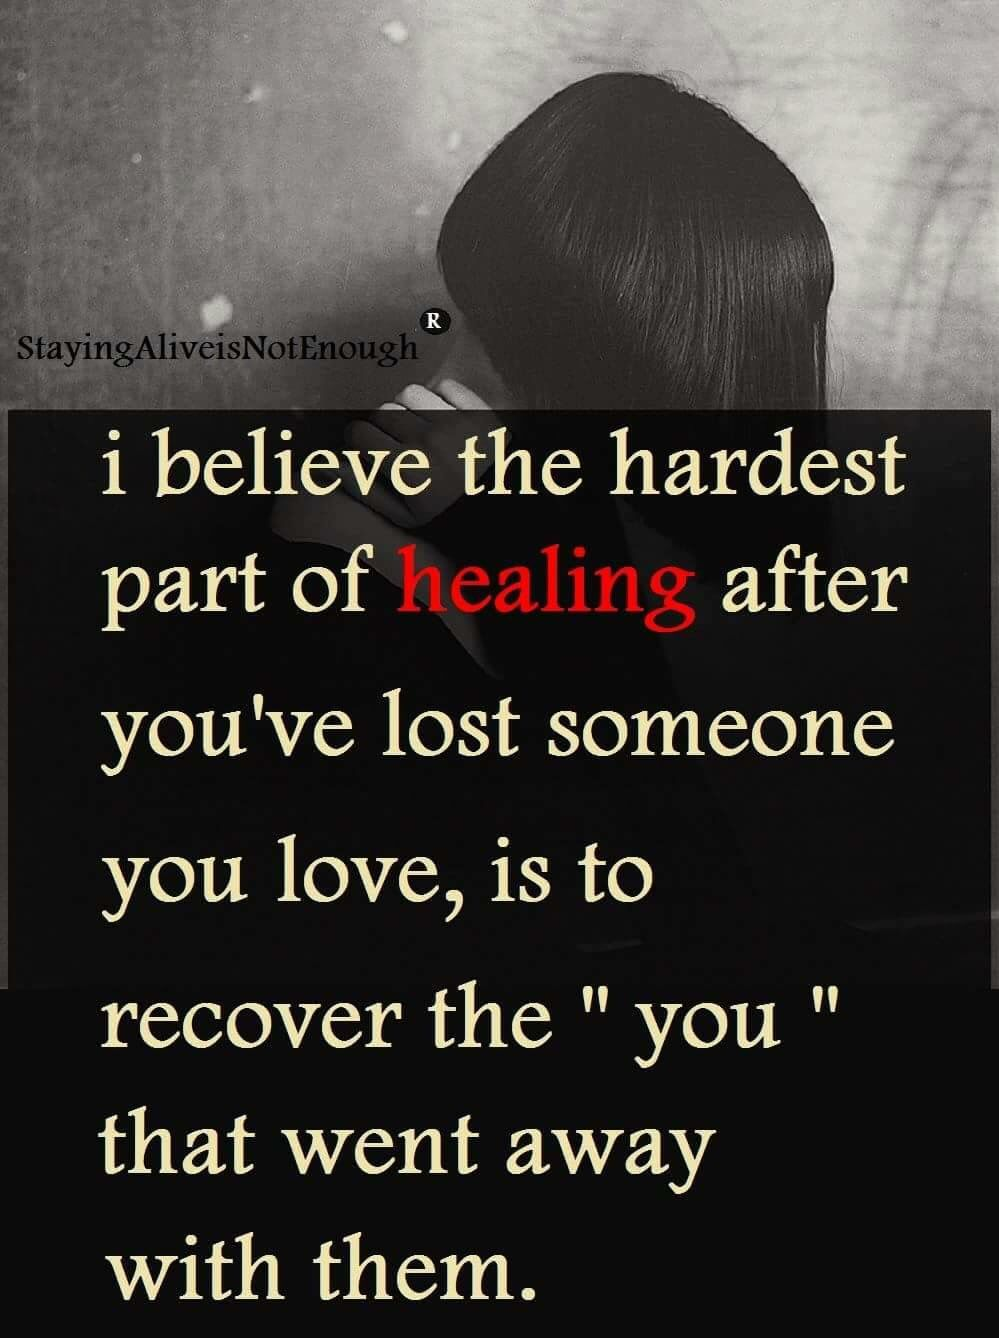 Lost Of Loved One Quotes I Believe The Hardest Part About Healing After The Loss Of A Loved